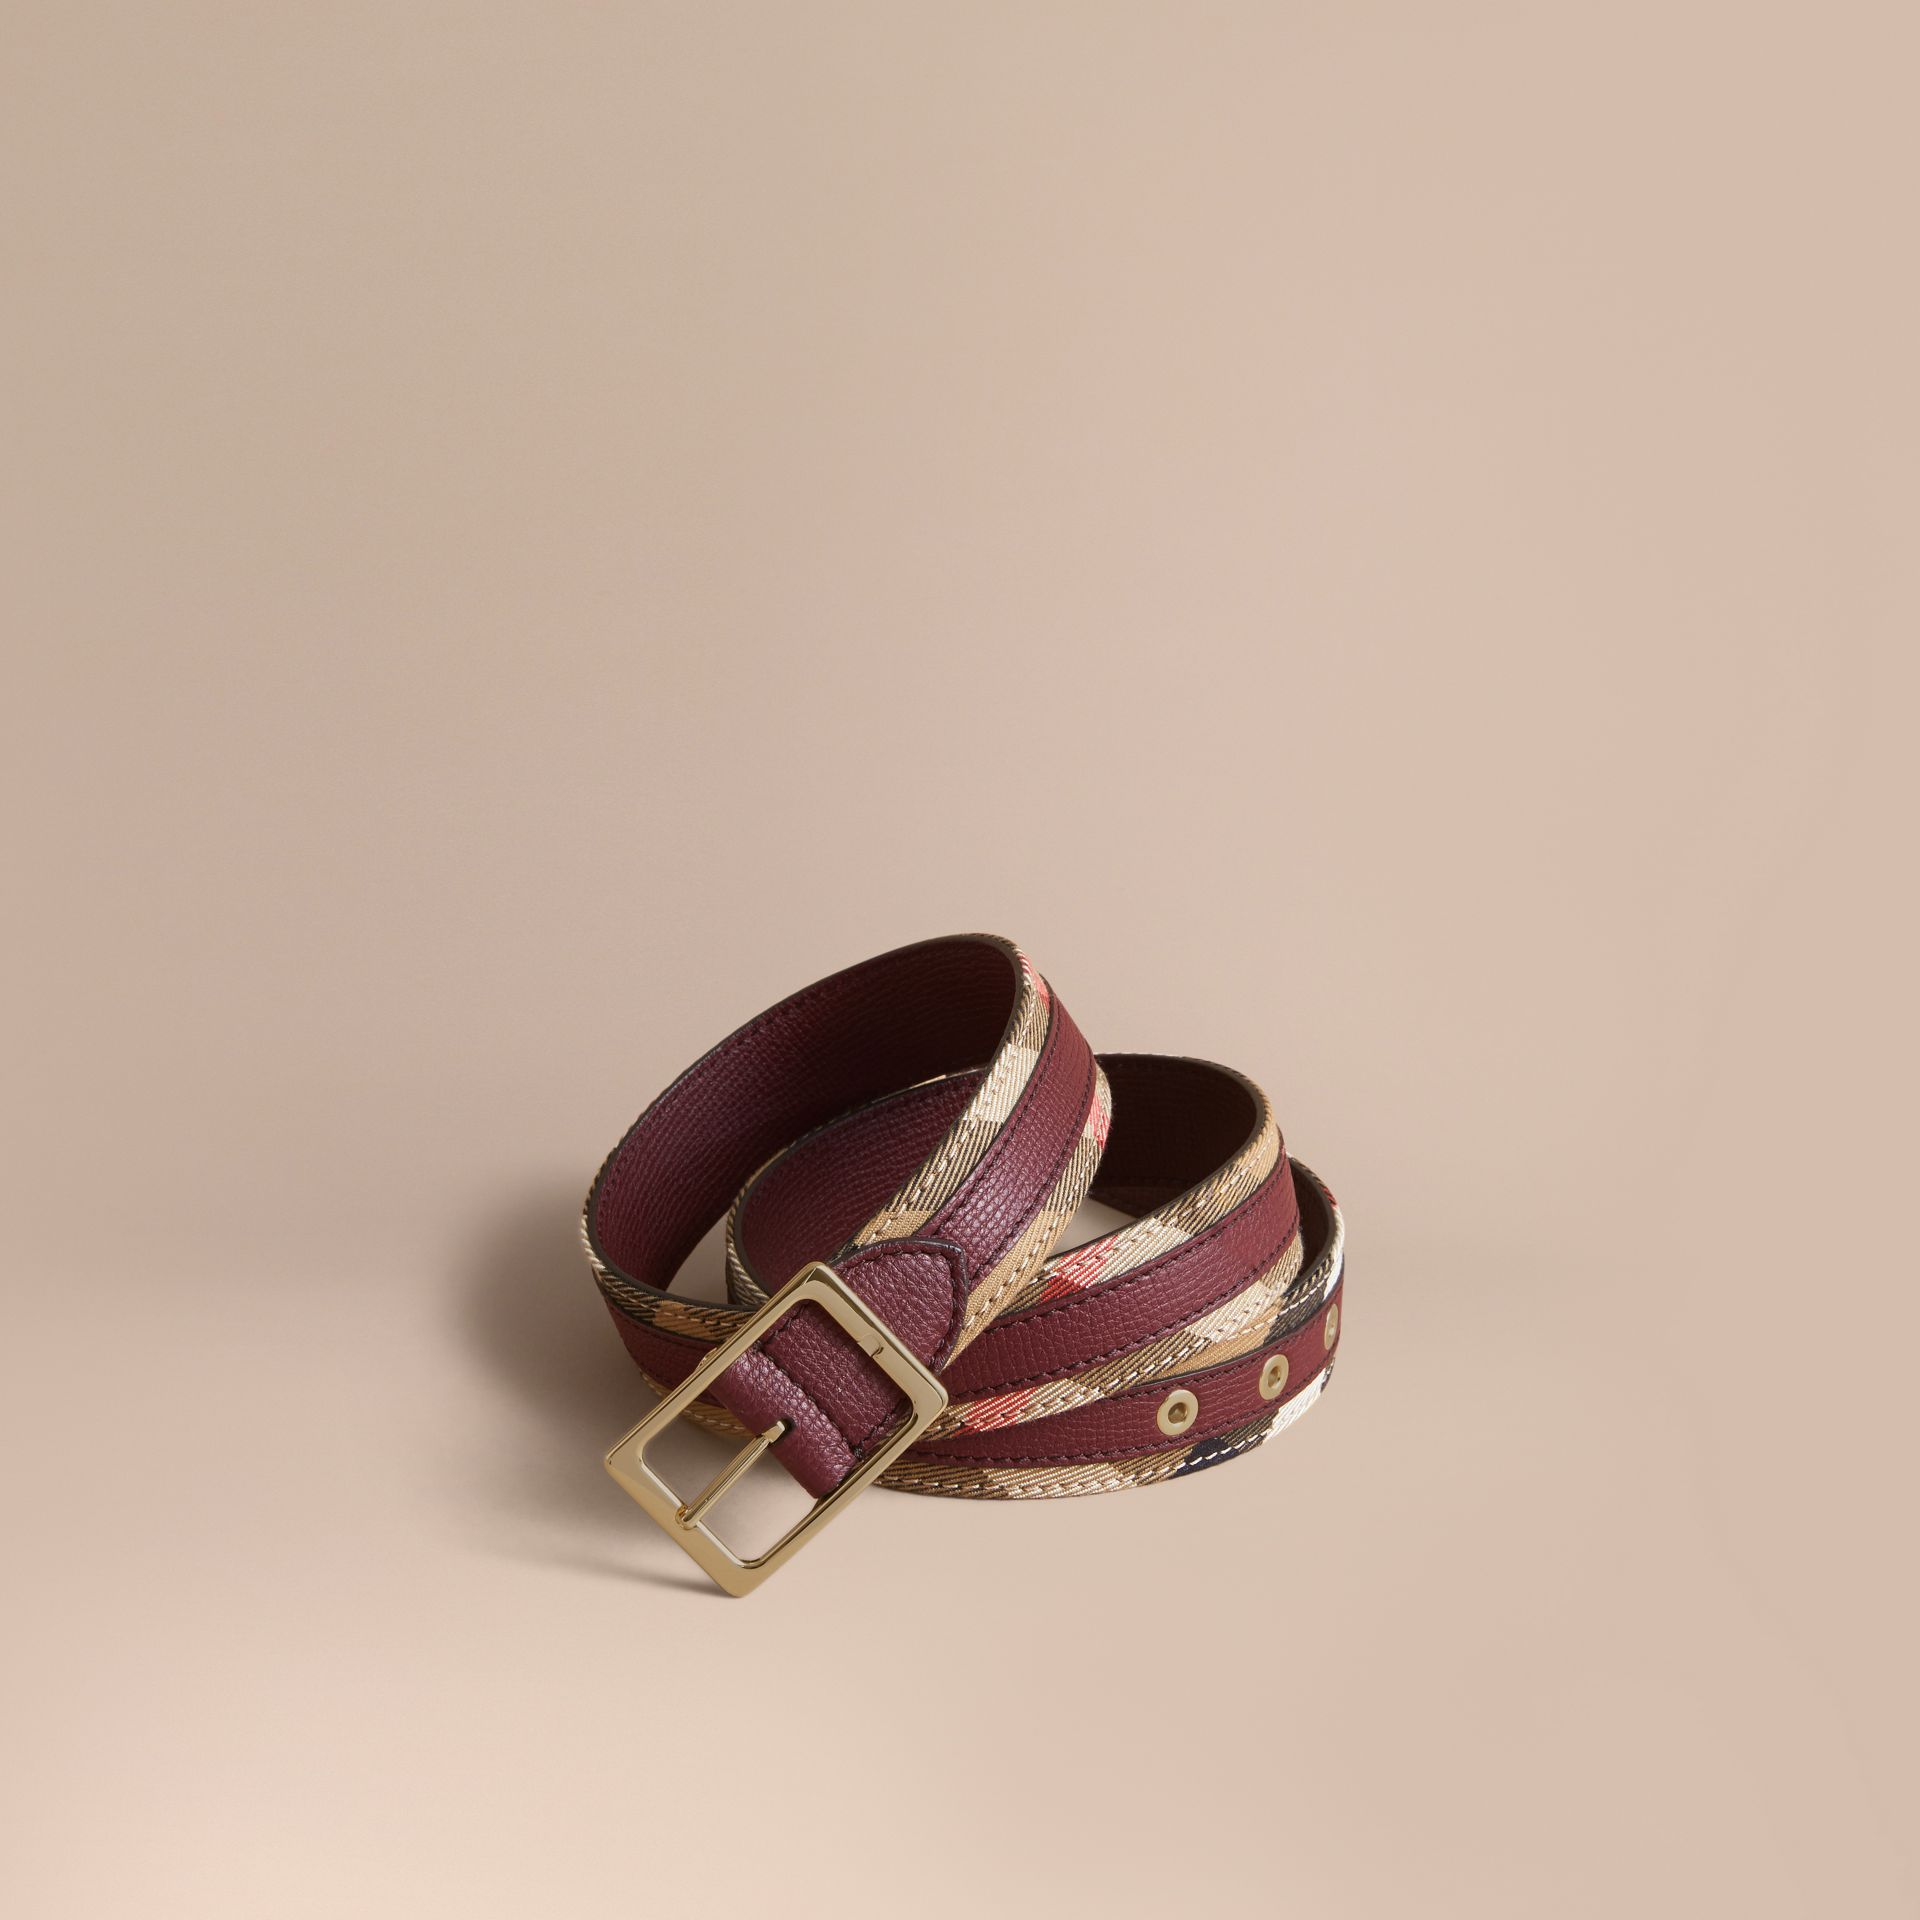 House Check and Grainy Leather Belt in Camel/mahogany Red - Women | Burberry - gallery image 1